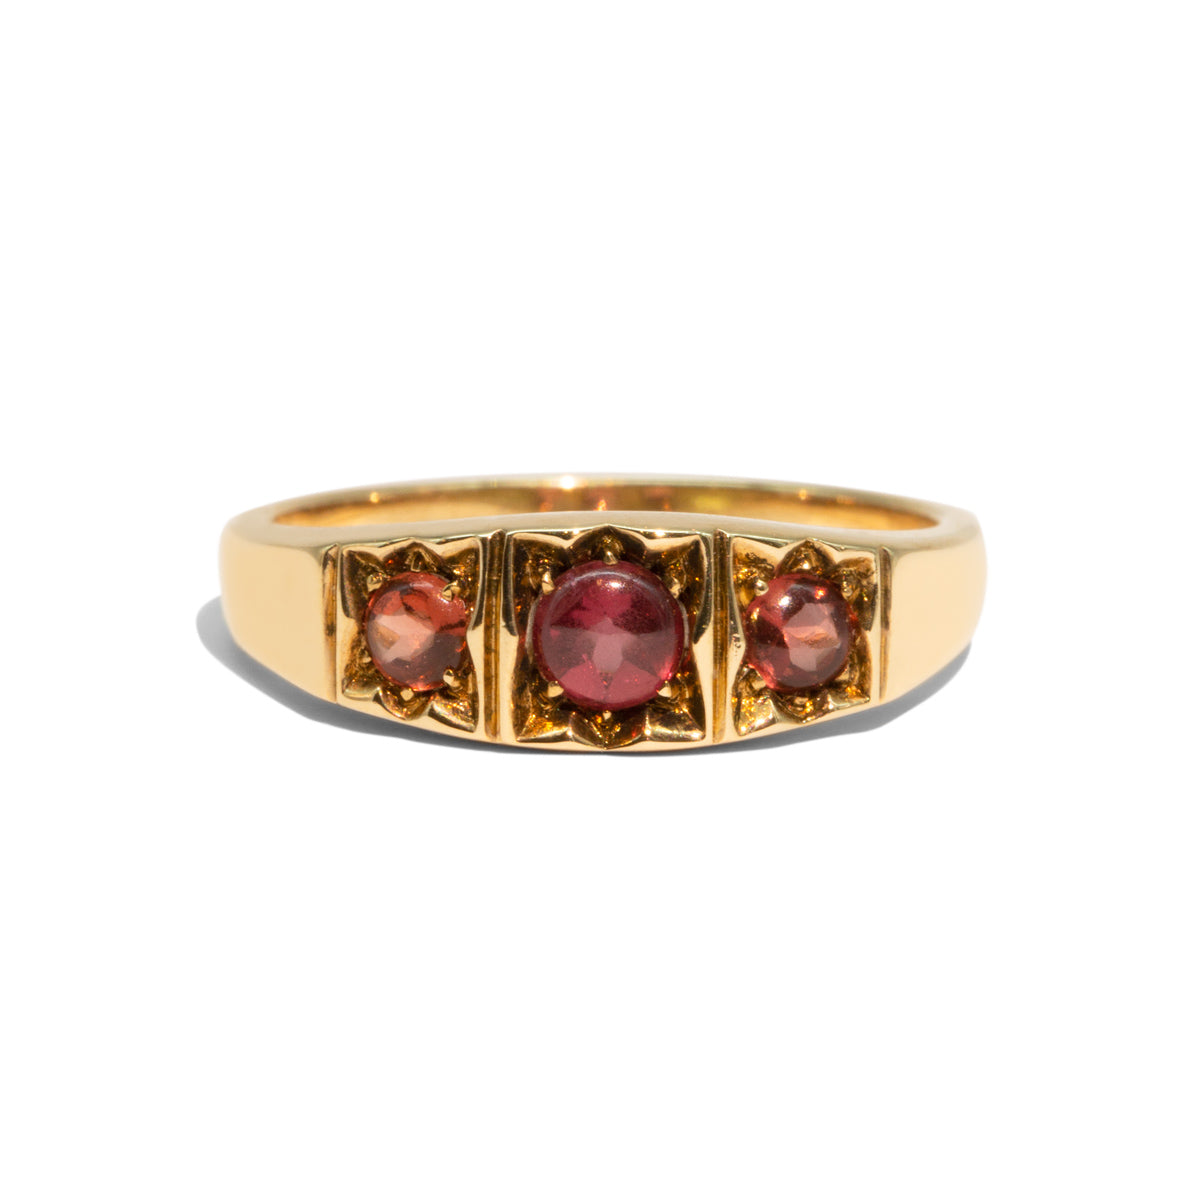 The Harriet Vintage Tourmaline Ring